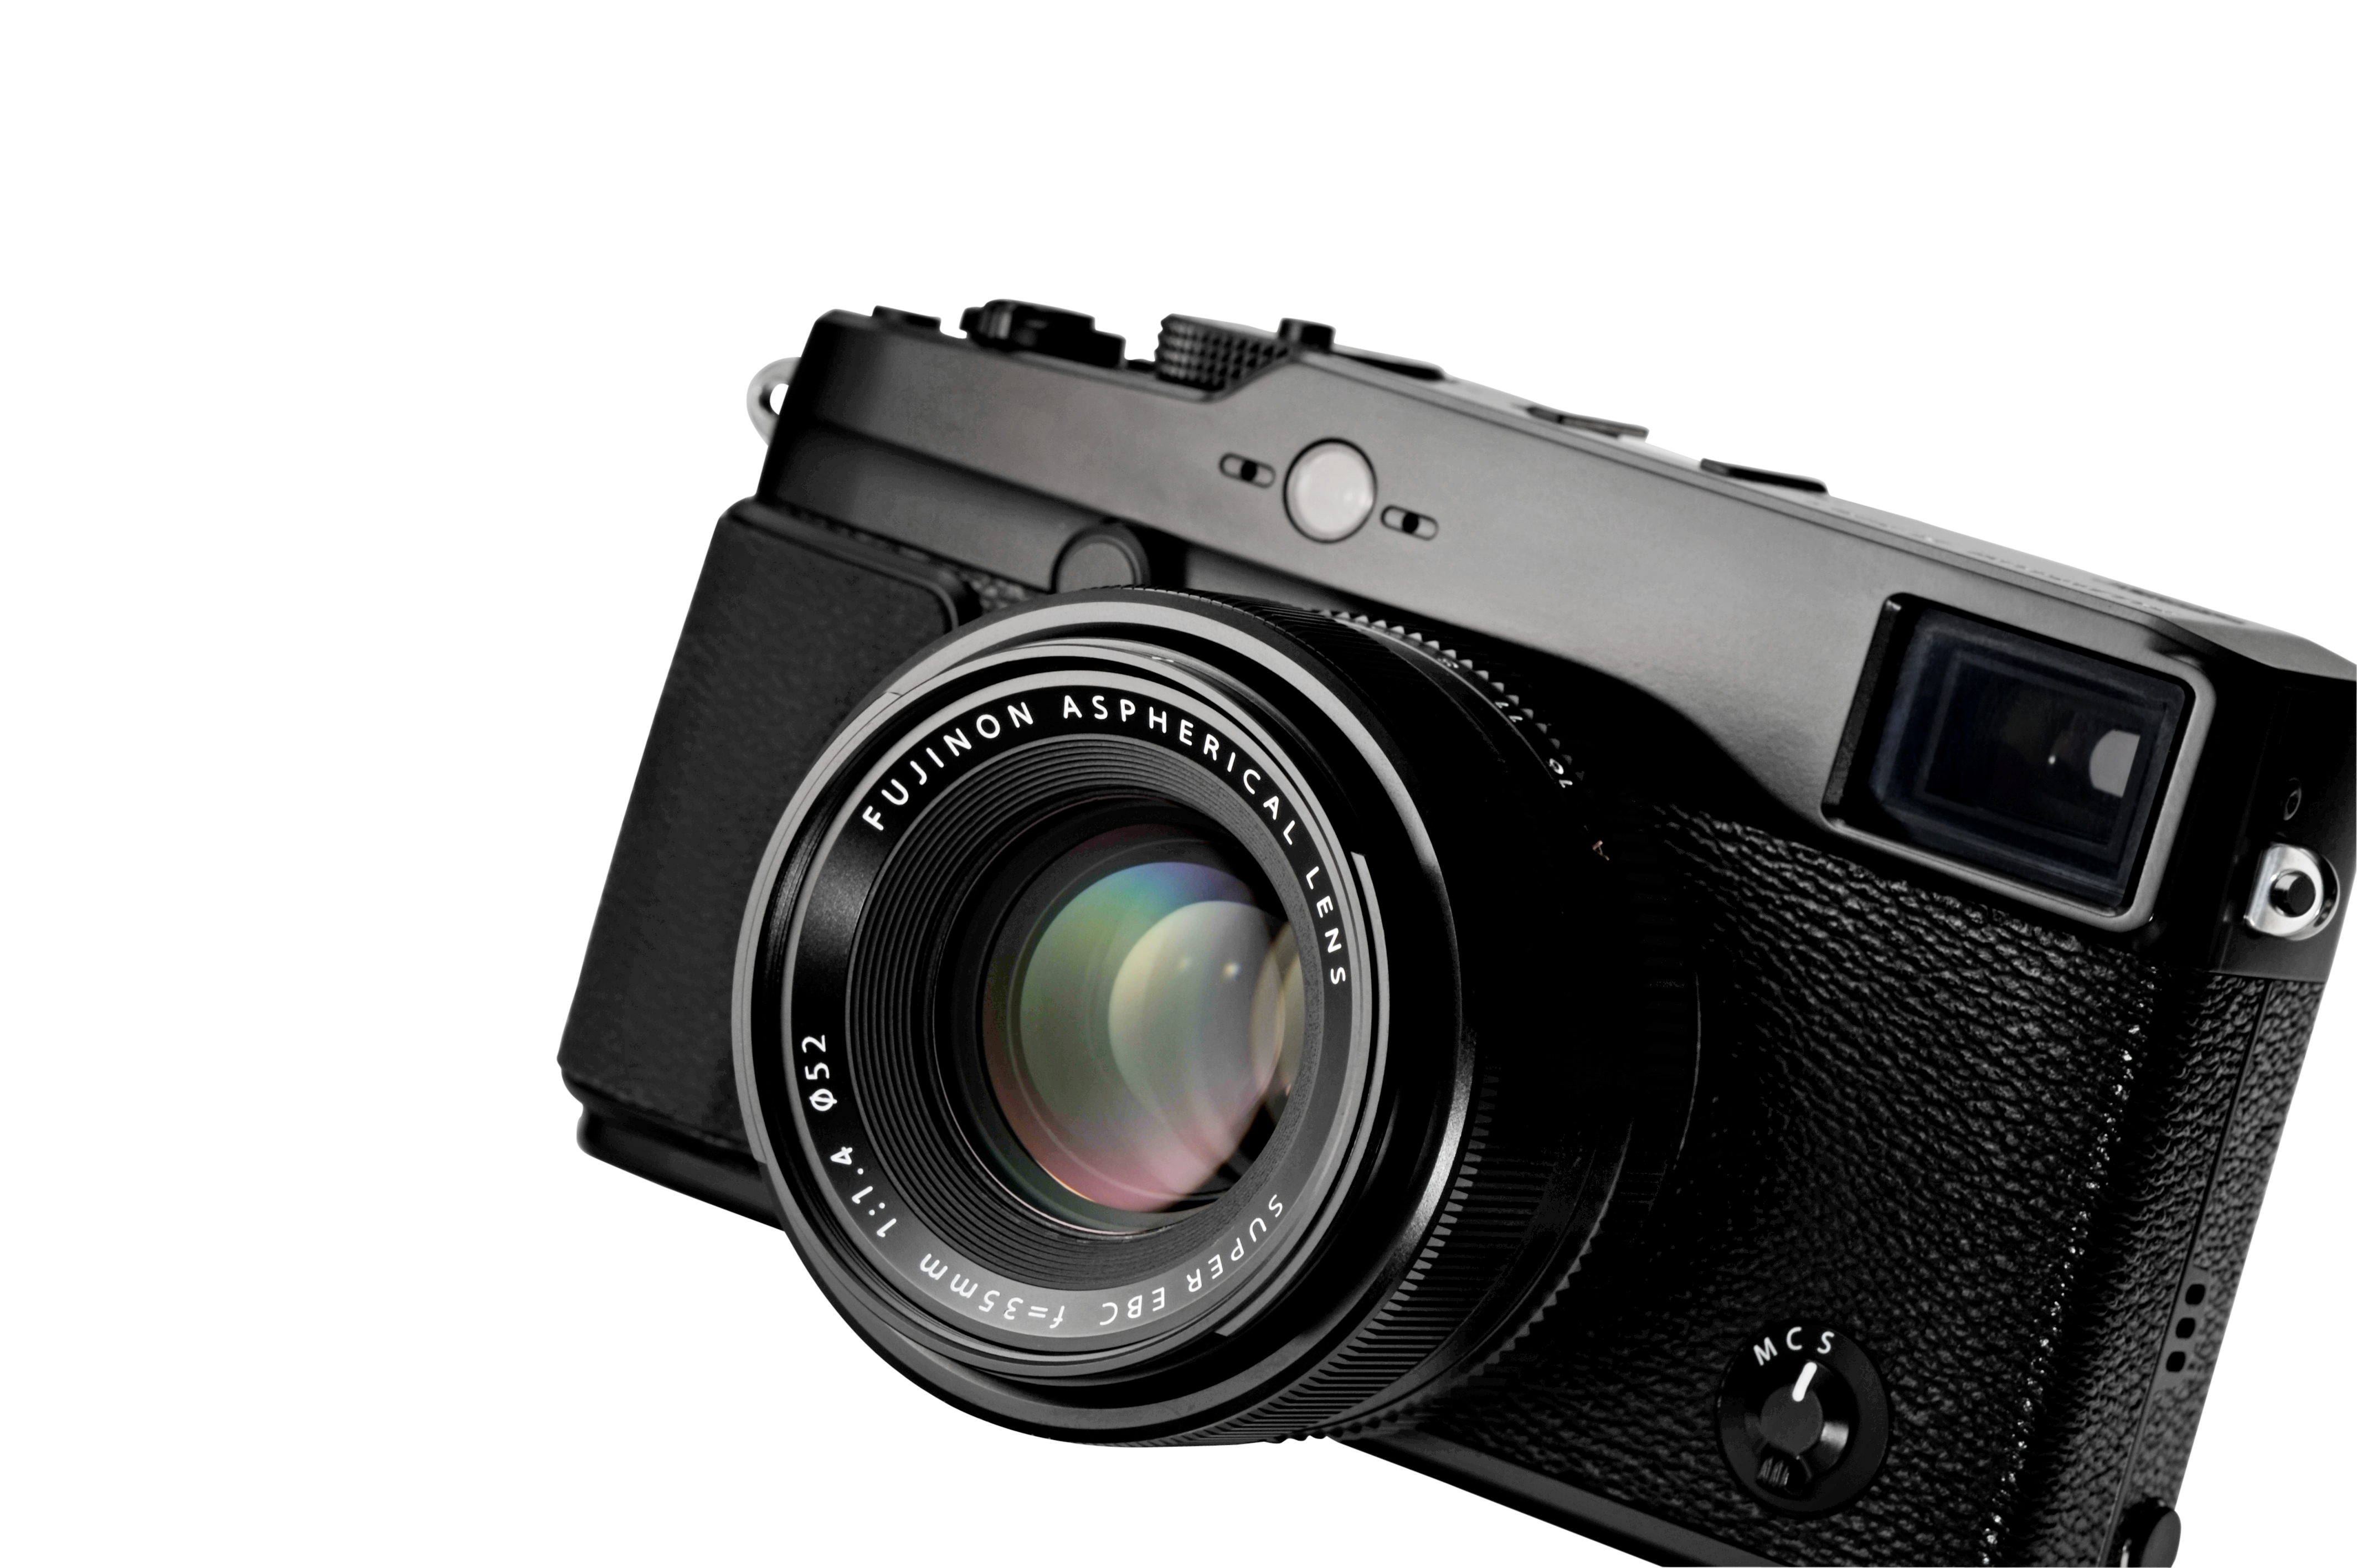 FUJIFILM Announces pricing for REVOLUTIONARY X-PRO1 INTERCHANGEABLE LENS  DIGITAL CAMERA SYSTEM INTRODUCED AT CES 2012